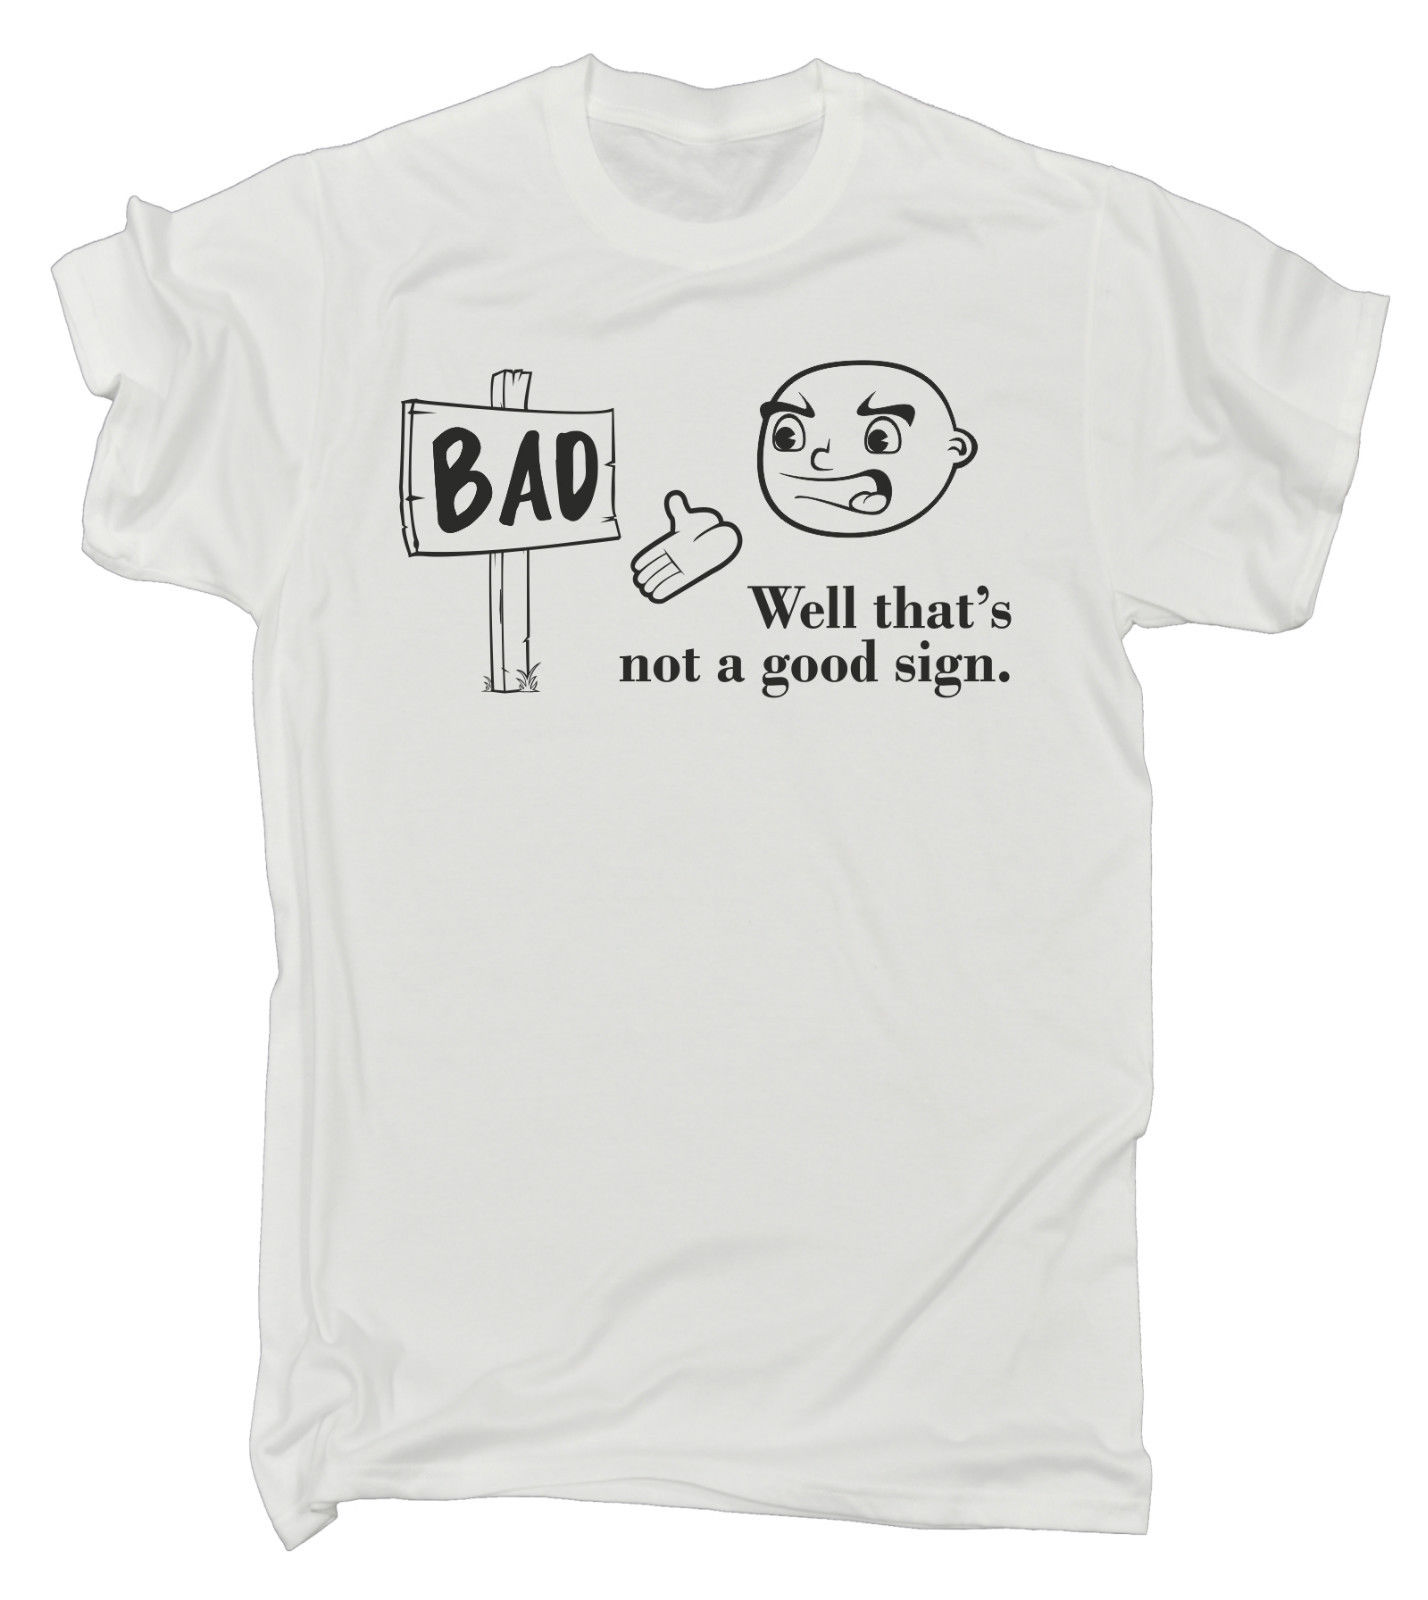 BAD Well Thats Not A Good Sign T-SHIRT Tee Joke Humour Funny Birthday Gift 123t Men Brand Printed 100% Cotton T Shirt